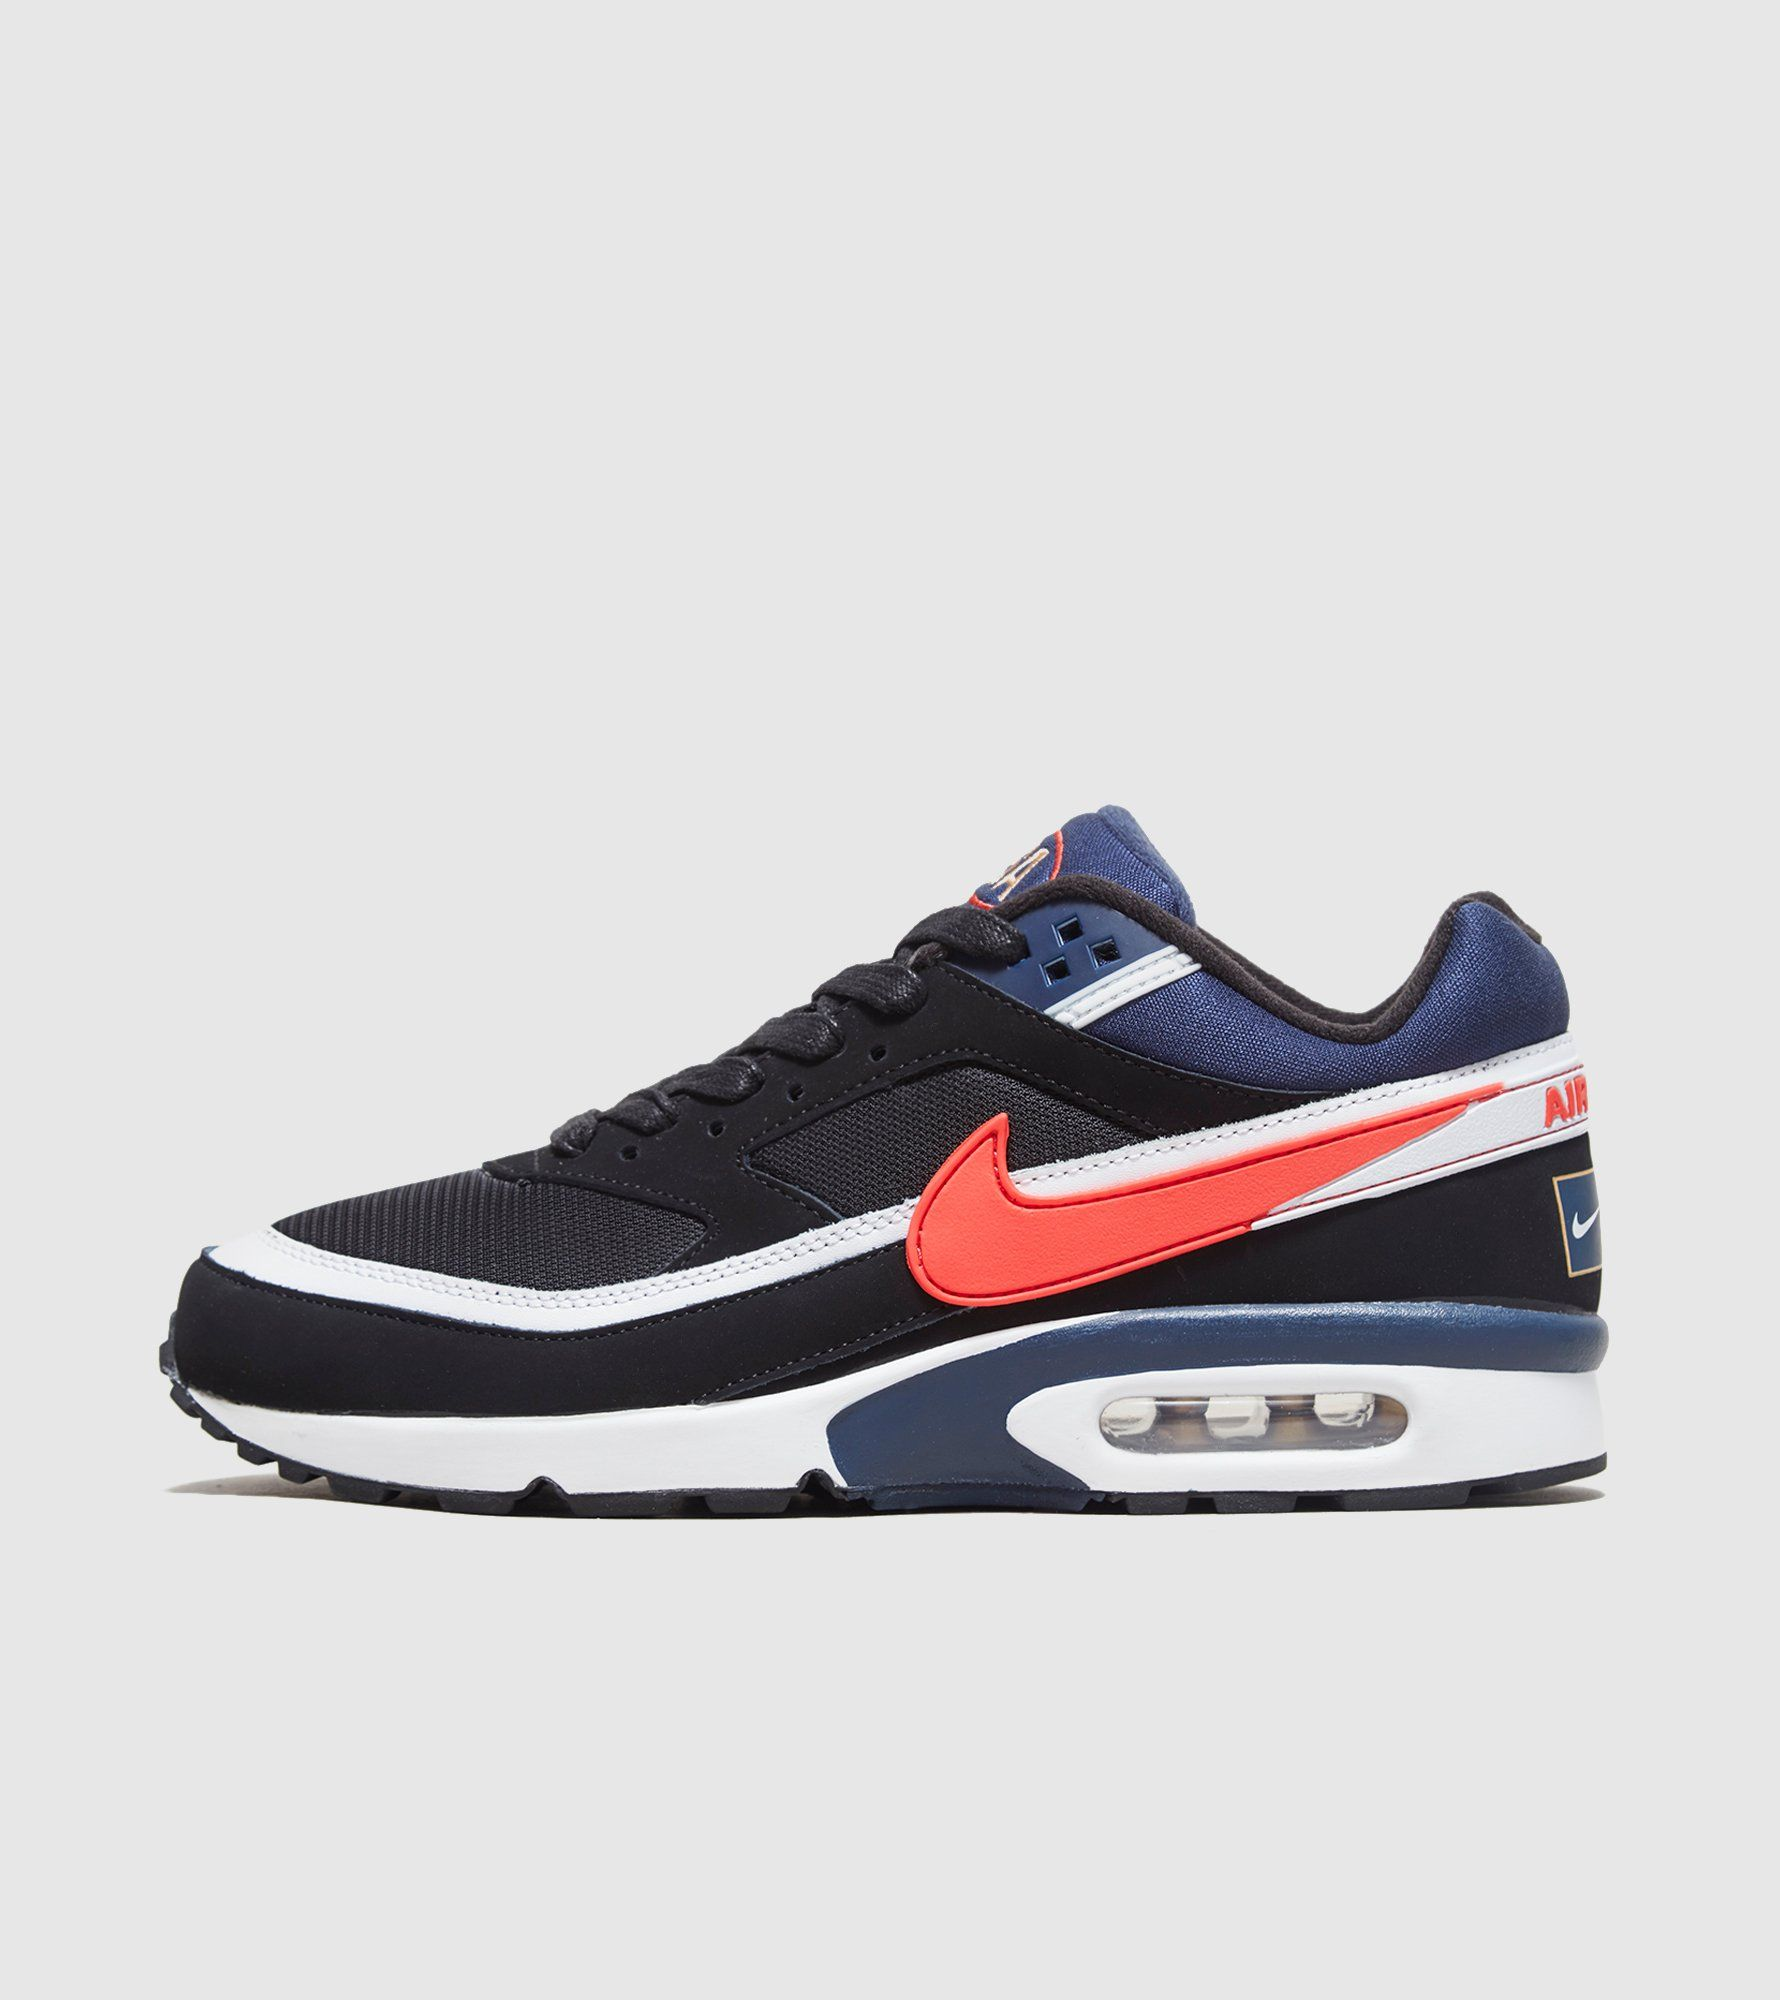 4f45b8708c discount code for nike air max bw olympic 2016 34e7a 66c08